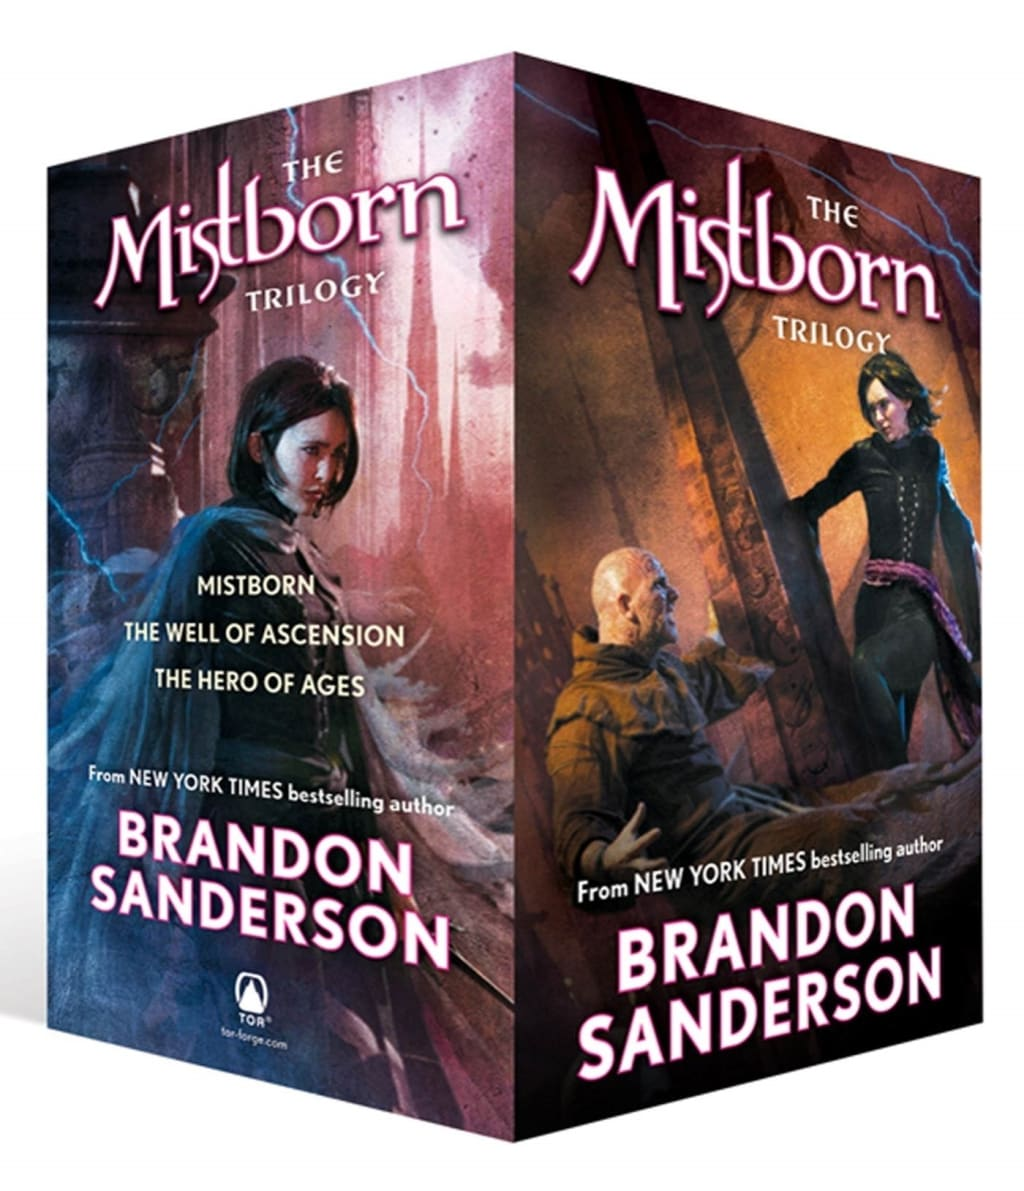 Mistborn: The Final Empire Review